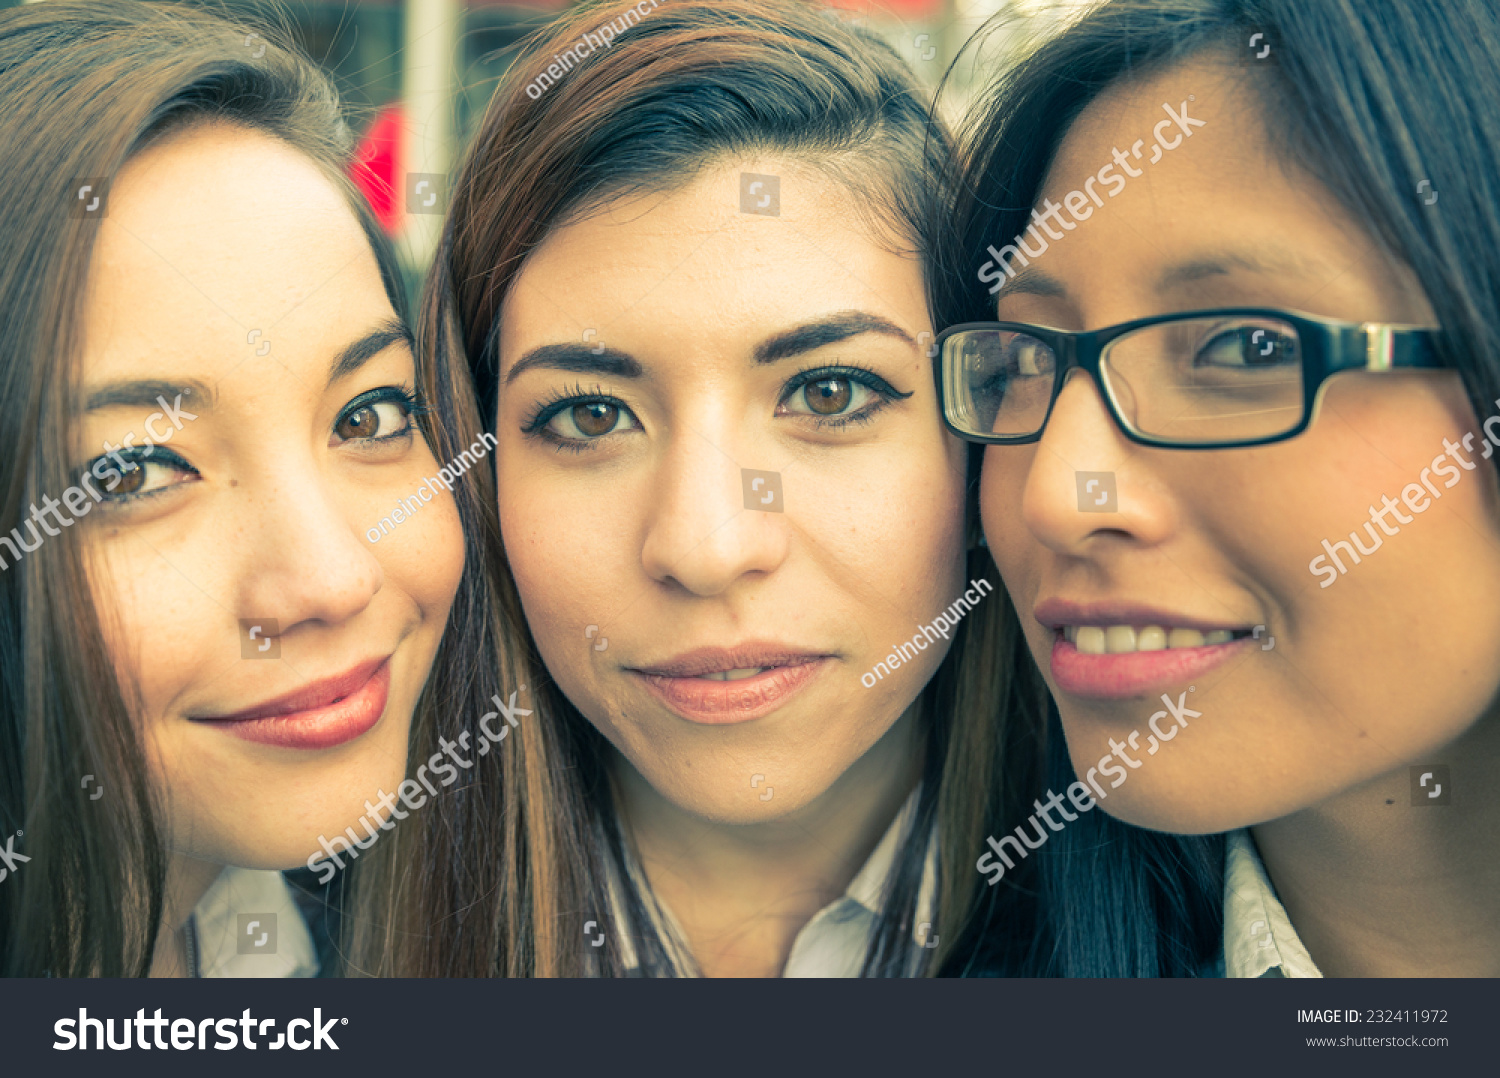 interracial portrait with three girls. asian, caucasian and latin ethnicity